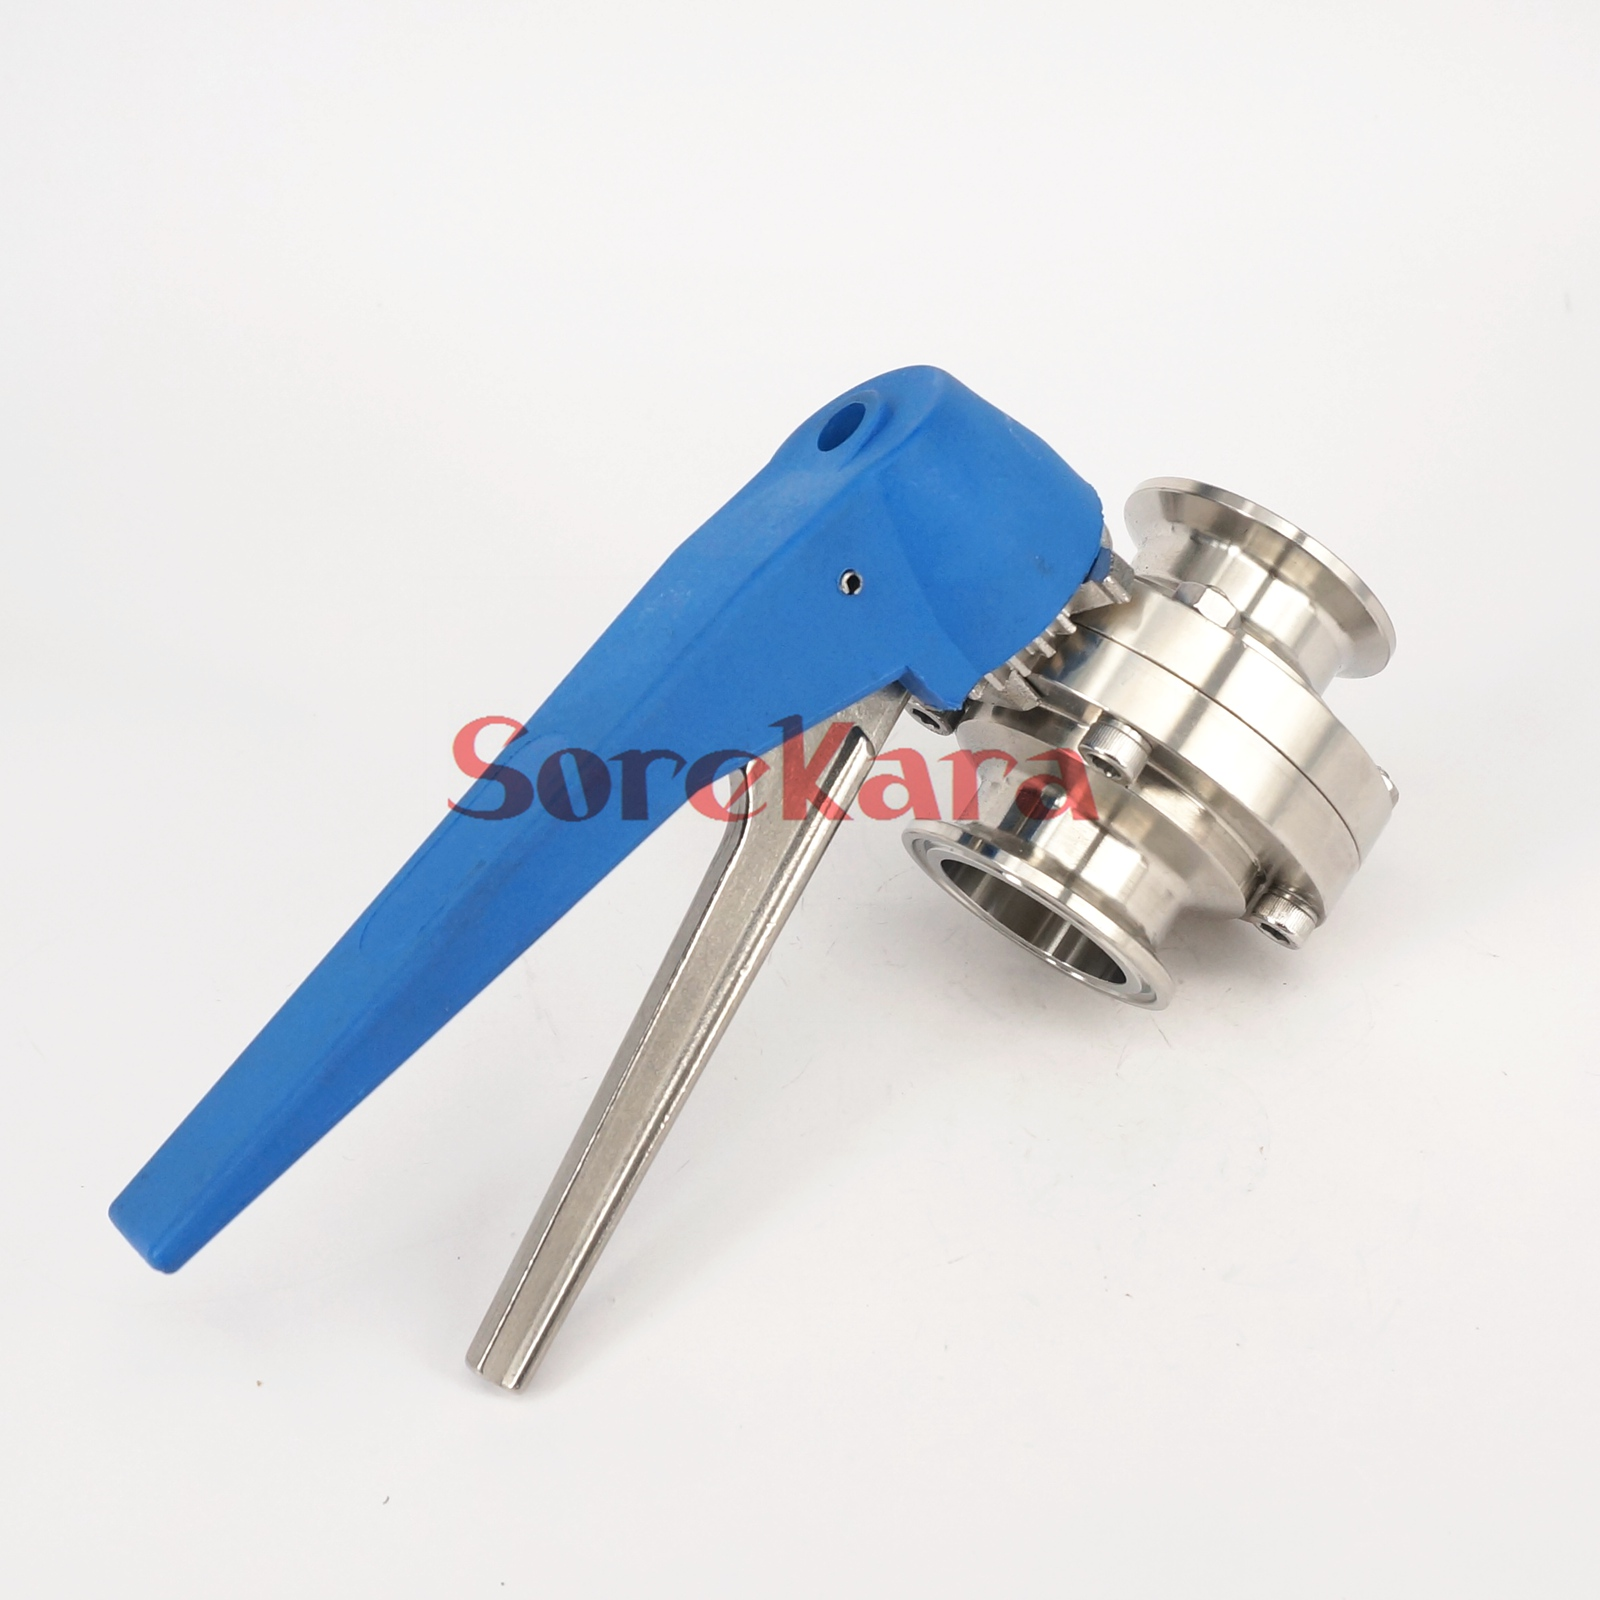 1-1/2 38mm SS304 Stainless Steel Sanitary 1.5 Tri Clamp Butterfly Valve Squeeze Trigger for Homebrew Dairy Product 1 25mm ss304 stainless steel sanitary 1 5 tri clamp butterfly valve homebrew beer dairy product